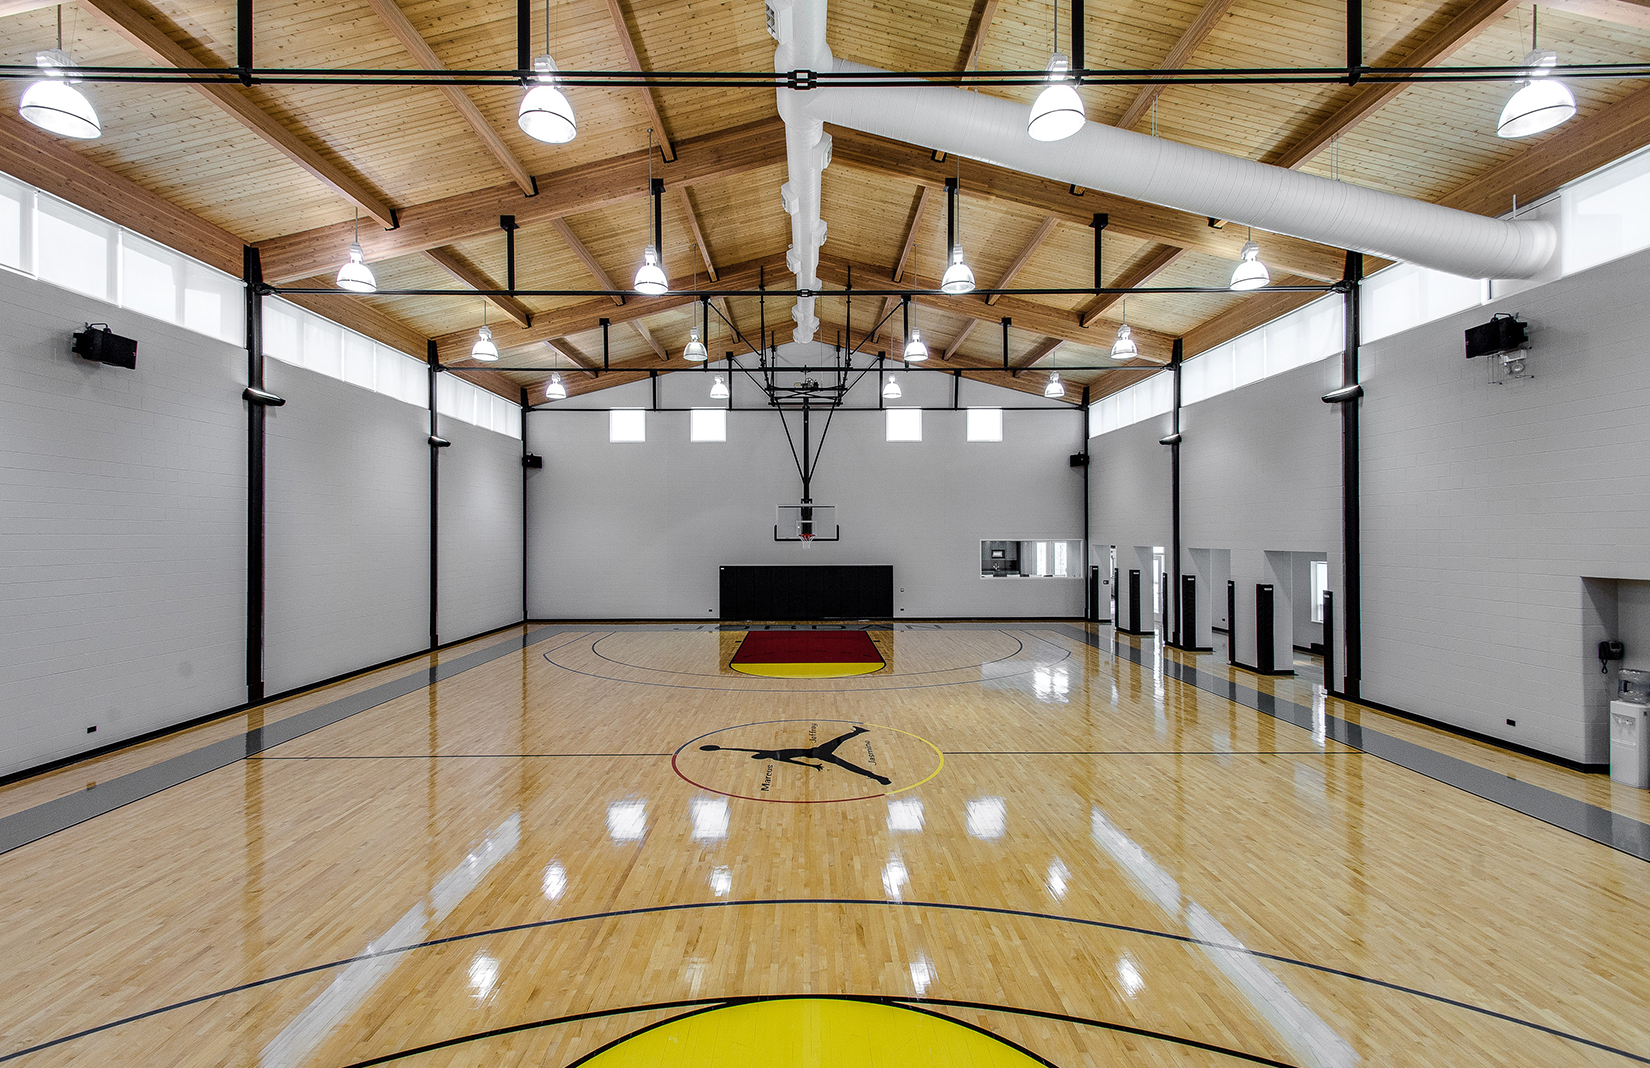 Michael Jordans Home Basketball Court